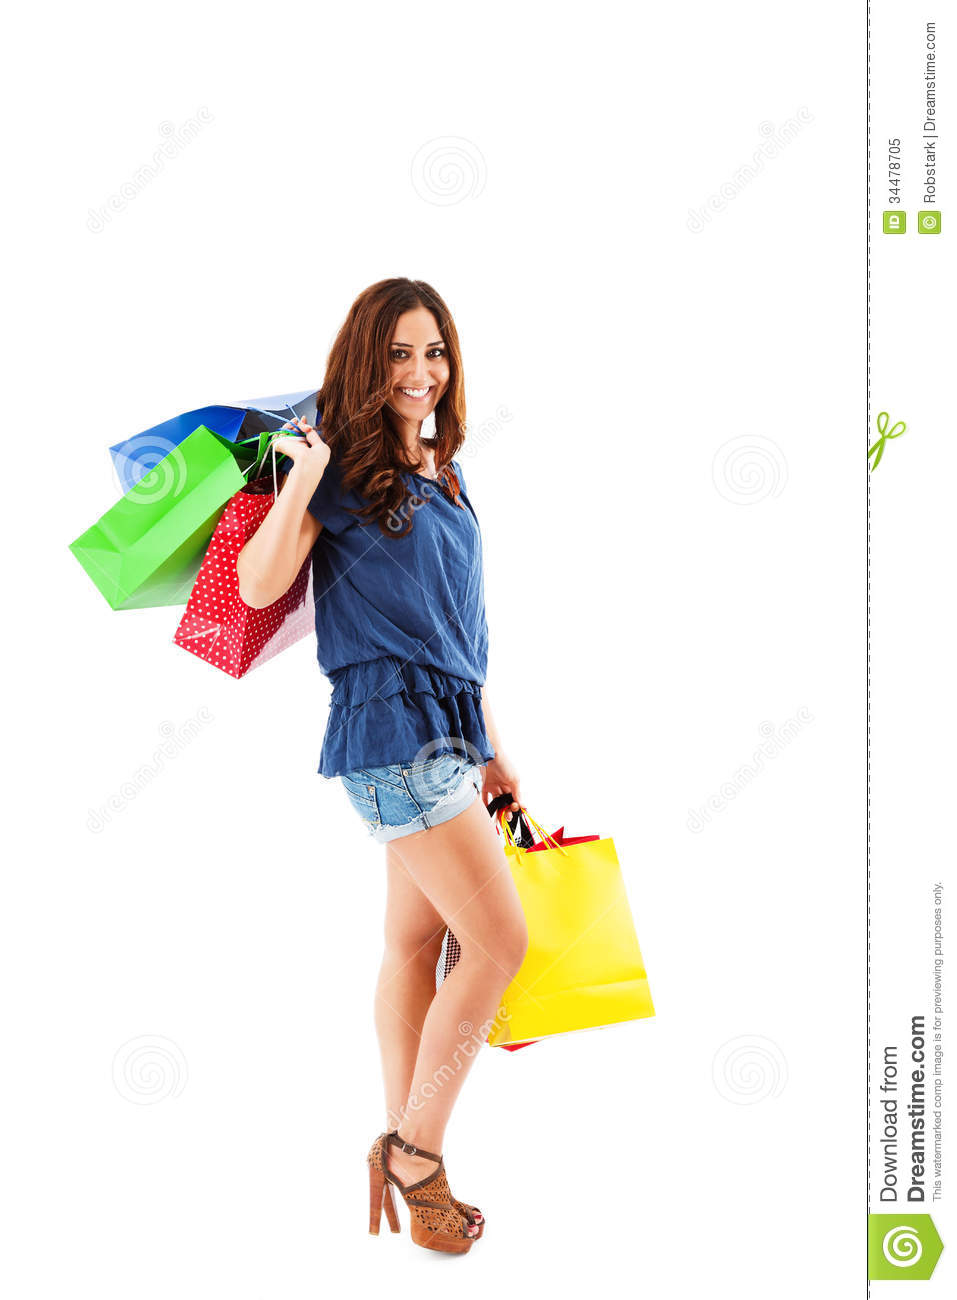 Model Young Woman Holding Bags Stock Photo | Getty Images